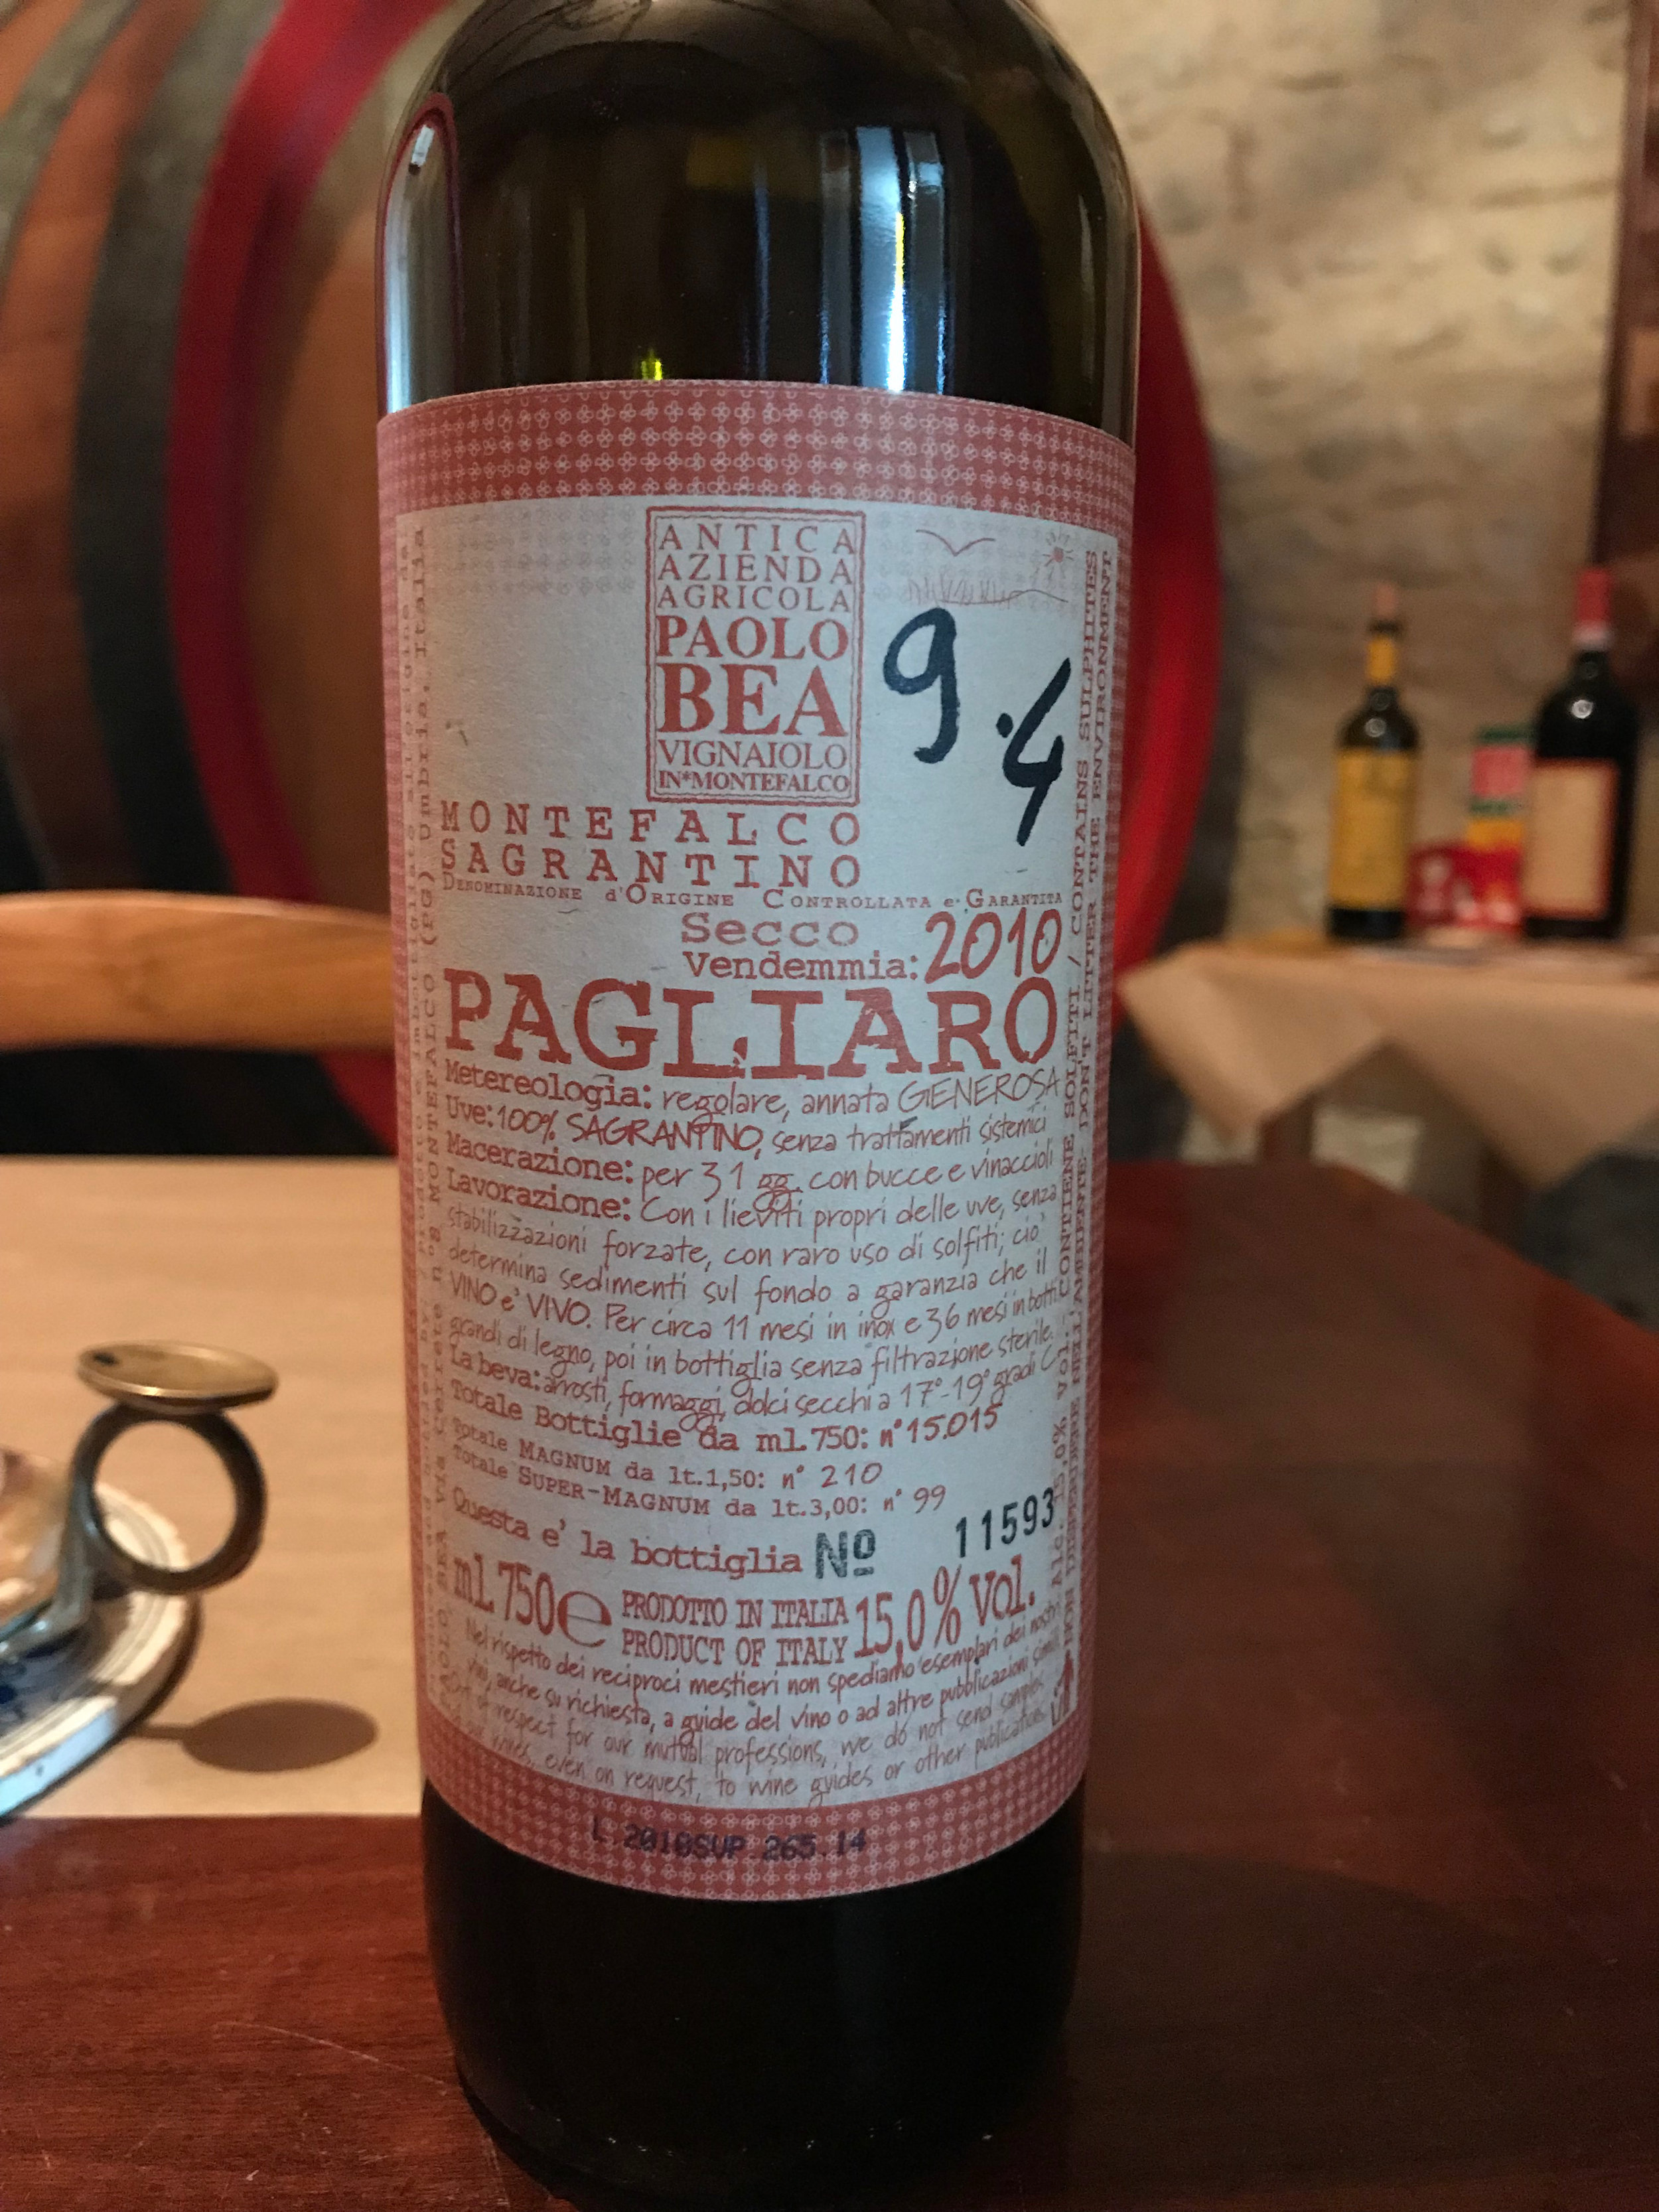 Already 9 years old, this 100% Sagrantino still packs a wallop.